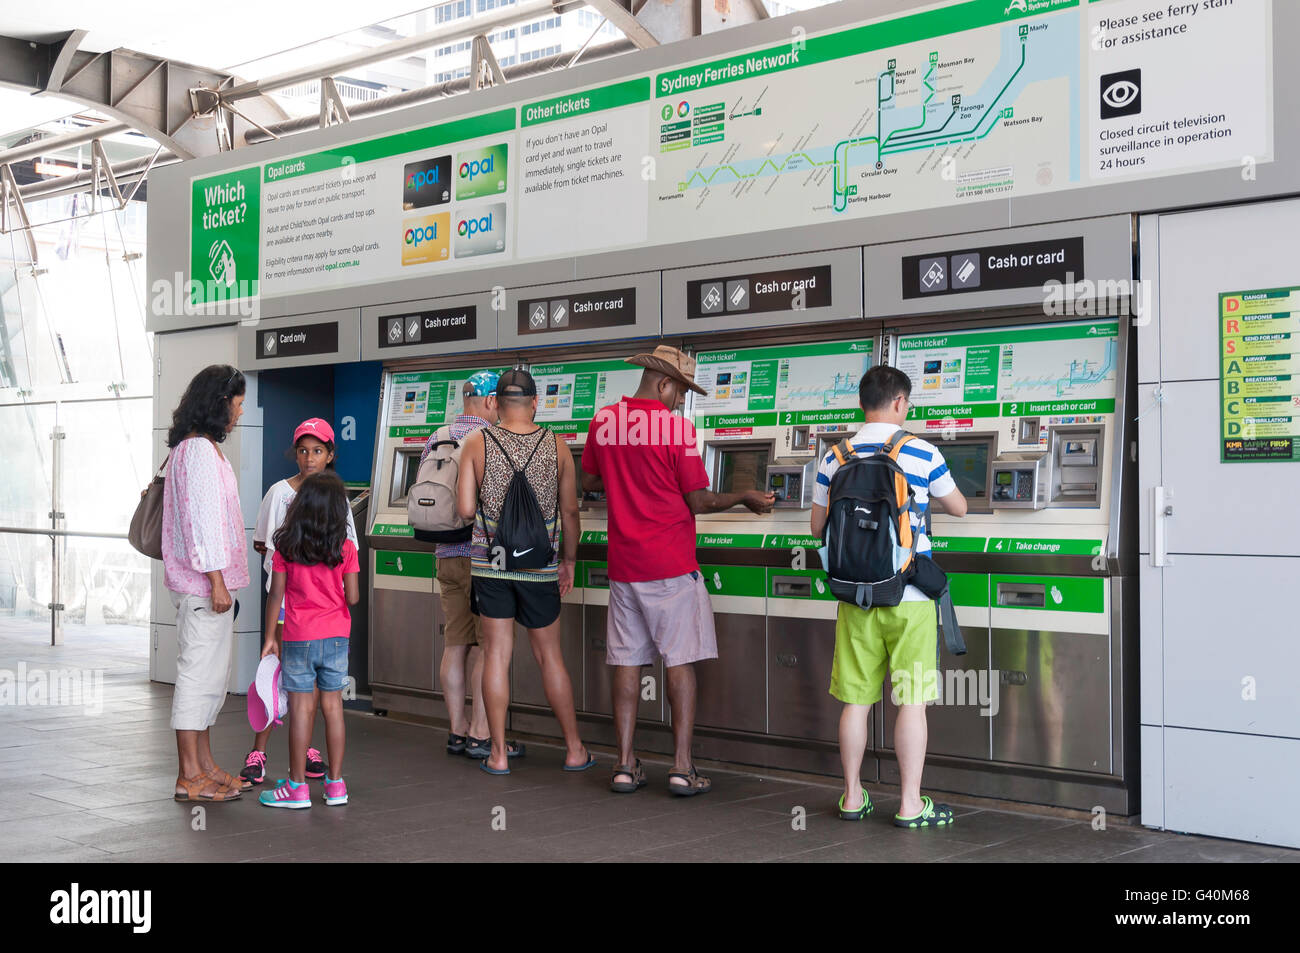 Commuters using Sydney Ferries ticket machines at Circular Quay, Sydney, New South Wales, Australia - Stock Image